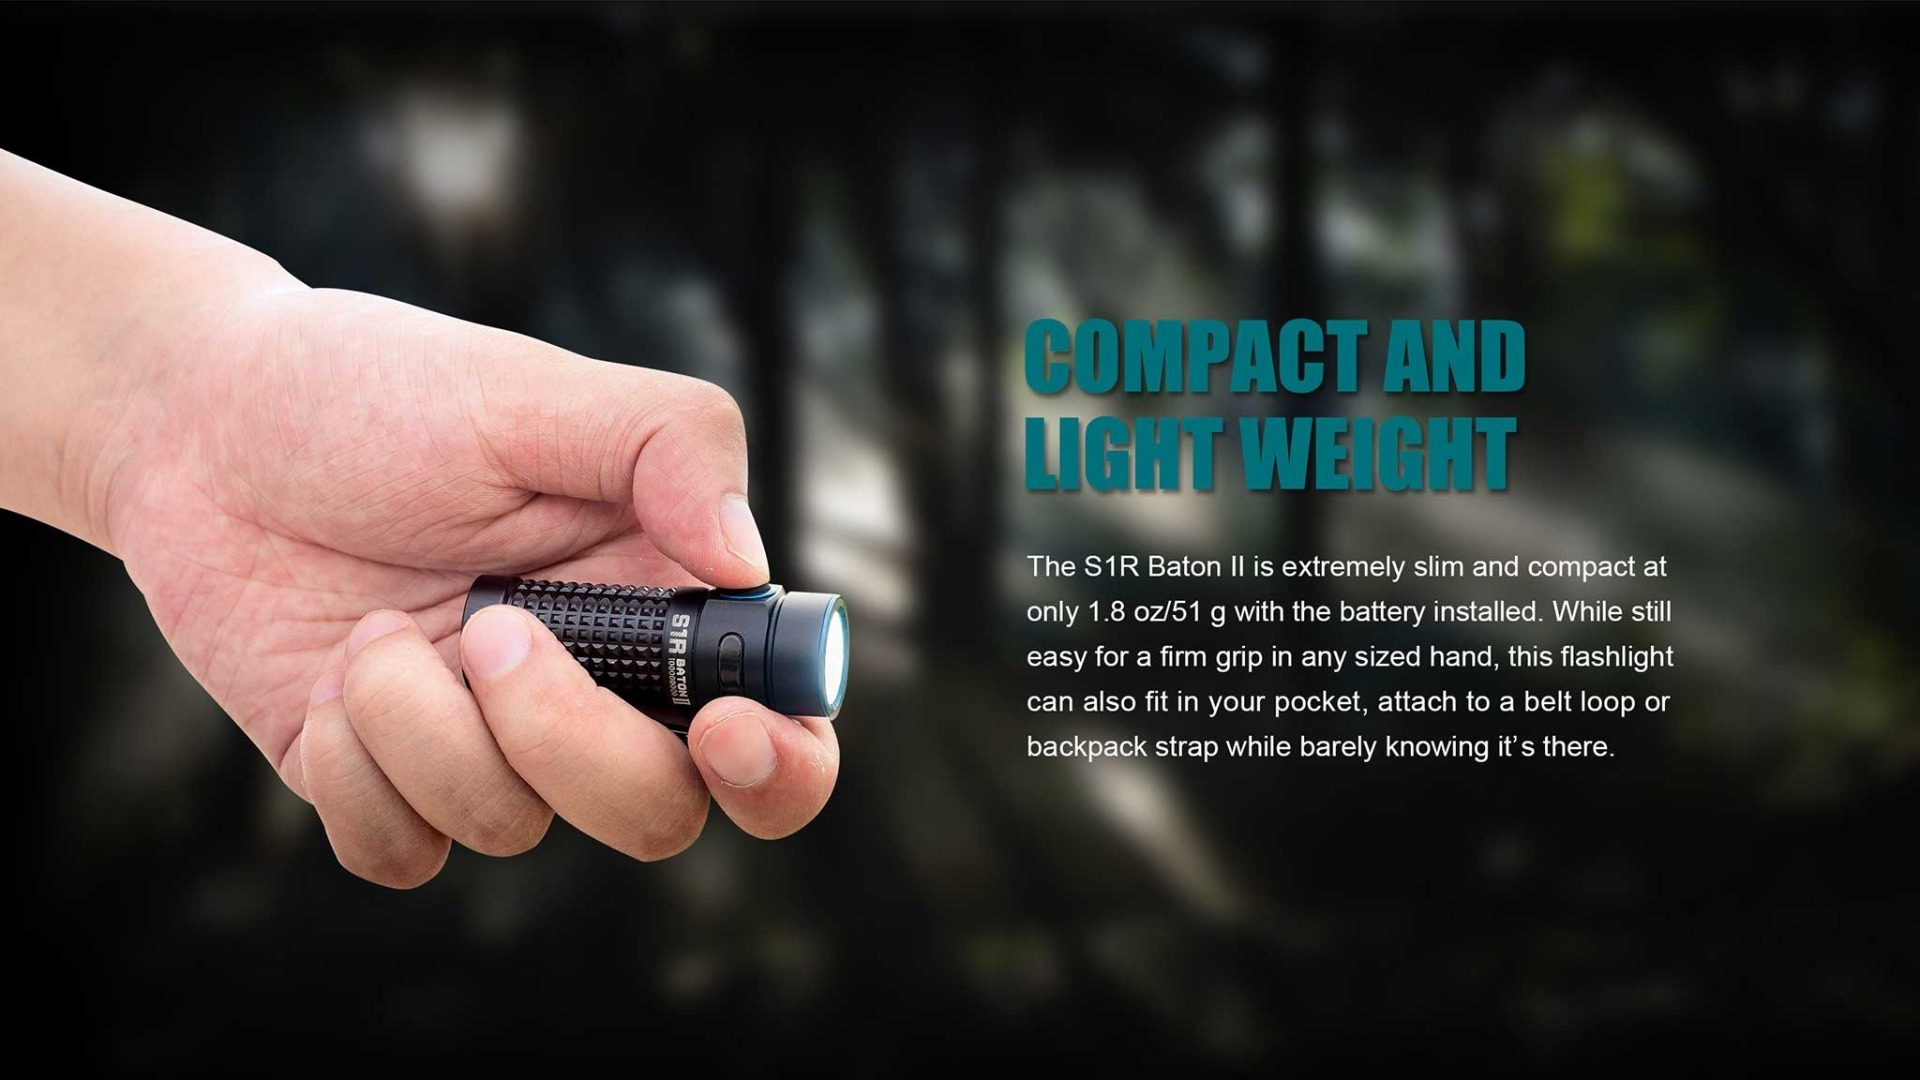 Olight S1R Baton II – A look at this EDC Torch